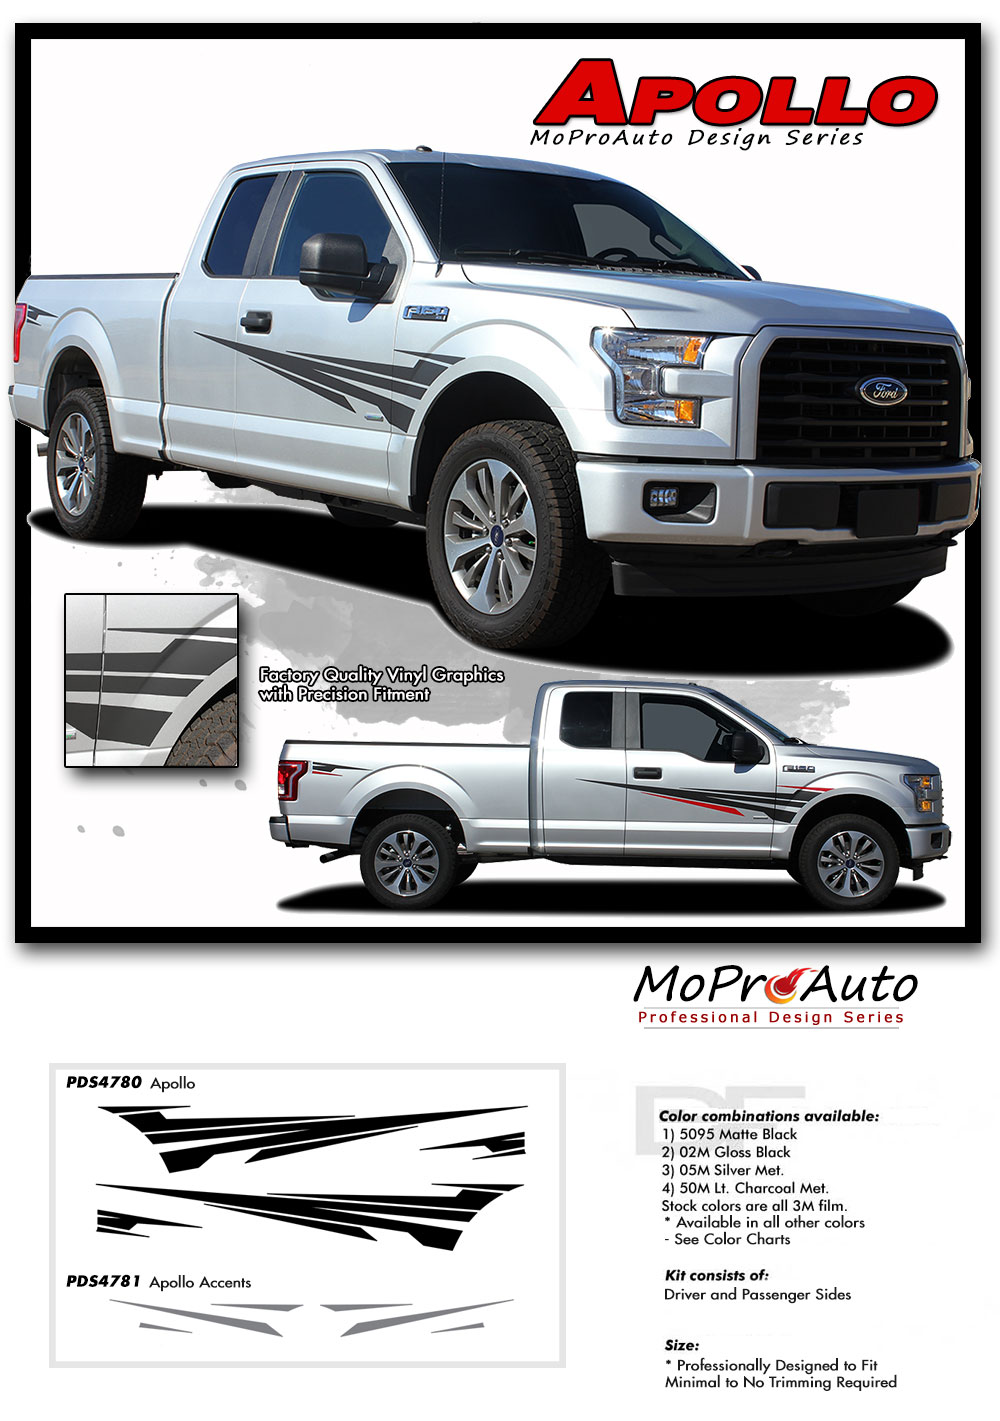 2015 2016 2017 2018 Apollo Door Stripes Ford F-Series F-150 Appearance Package Vinyl Graphics and Decals Kit by MoProAuto Pro Design Series